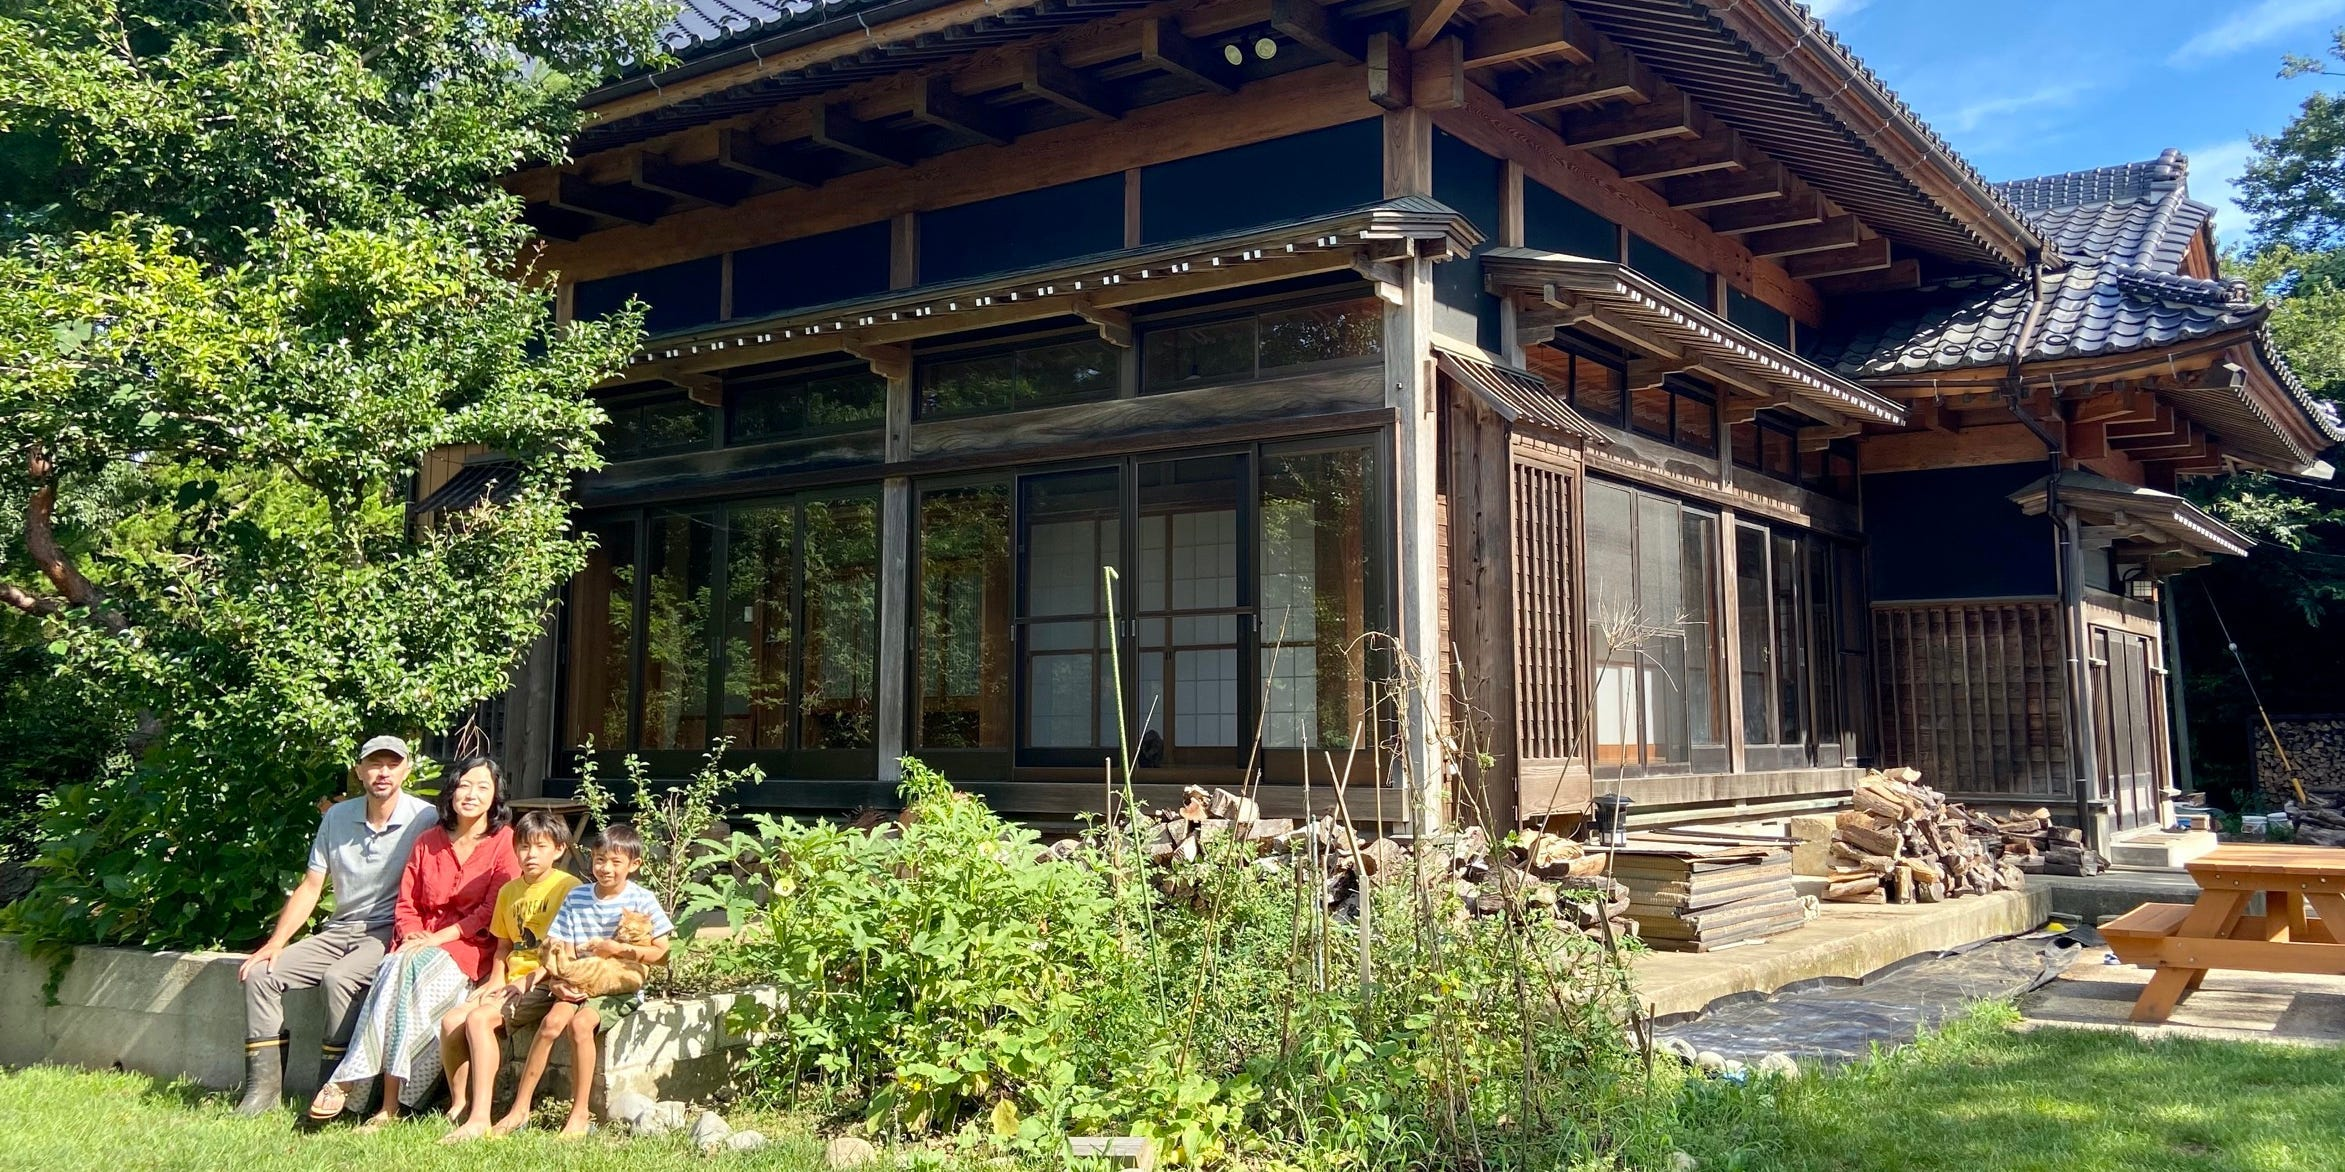 A couple bought an abandoned farmhouse in rural Japan for $30,000 and has spent 2 years renovating it. Here's how they turned it into their dream family home.